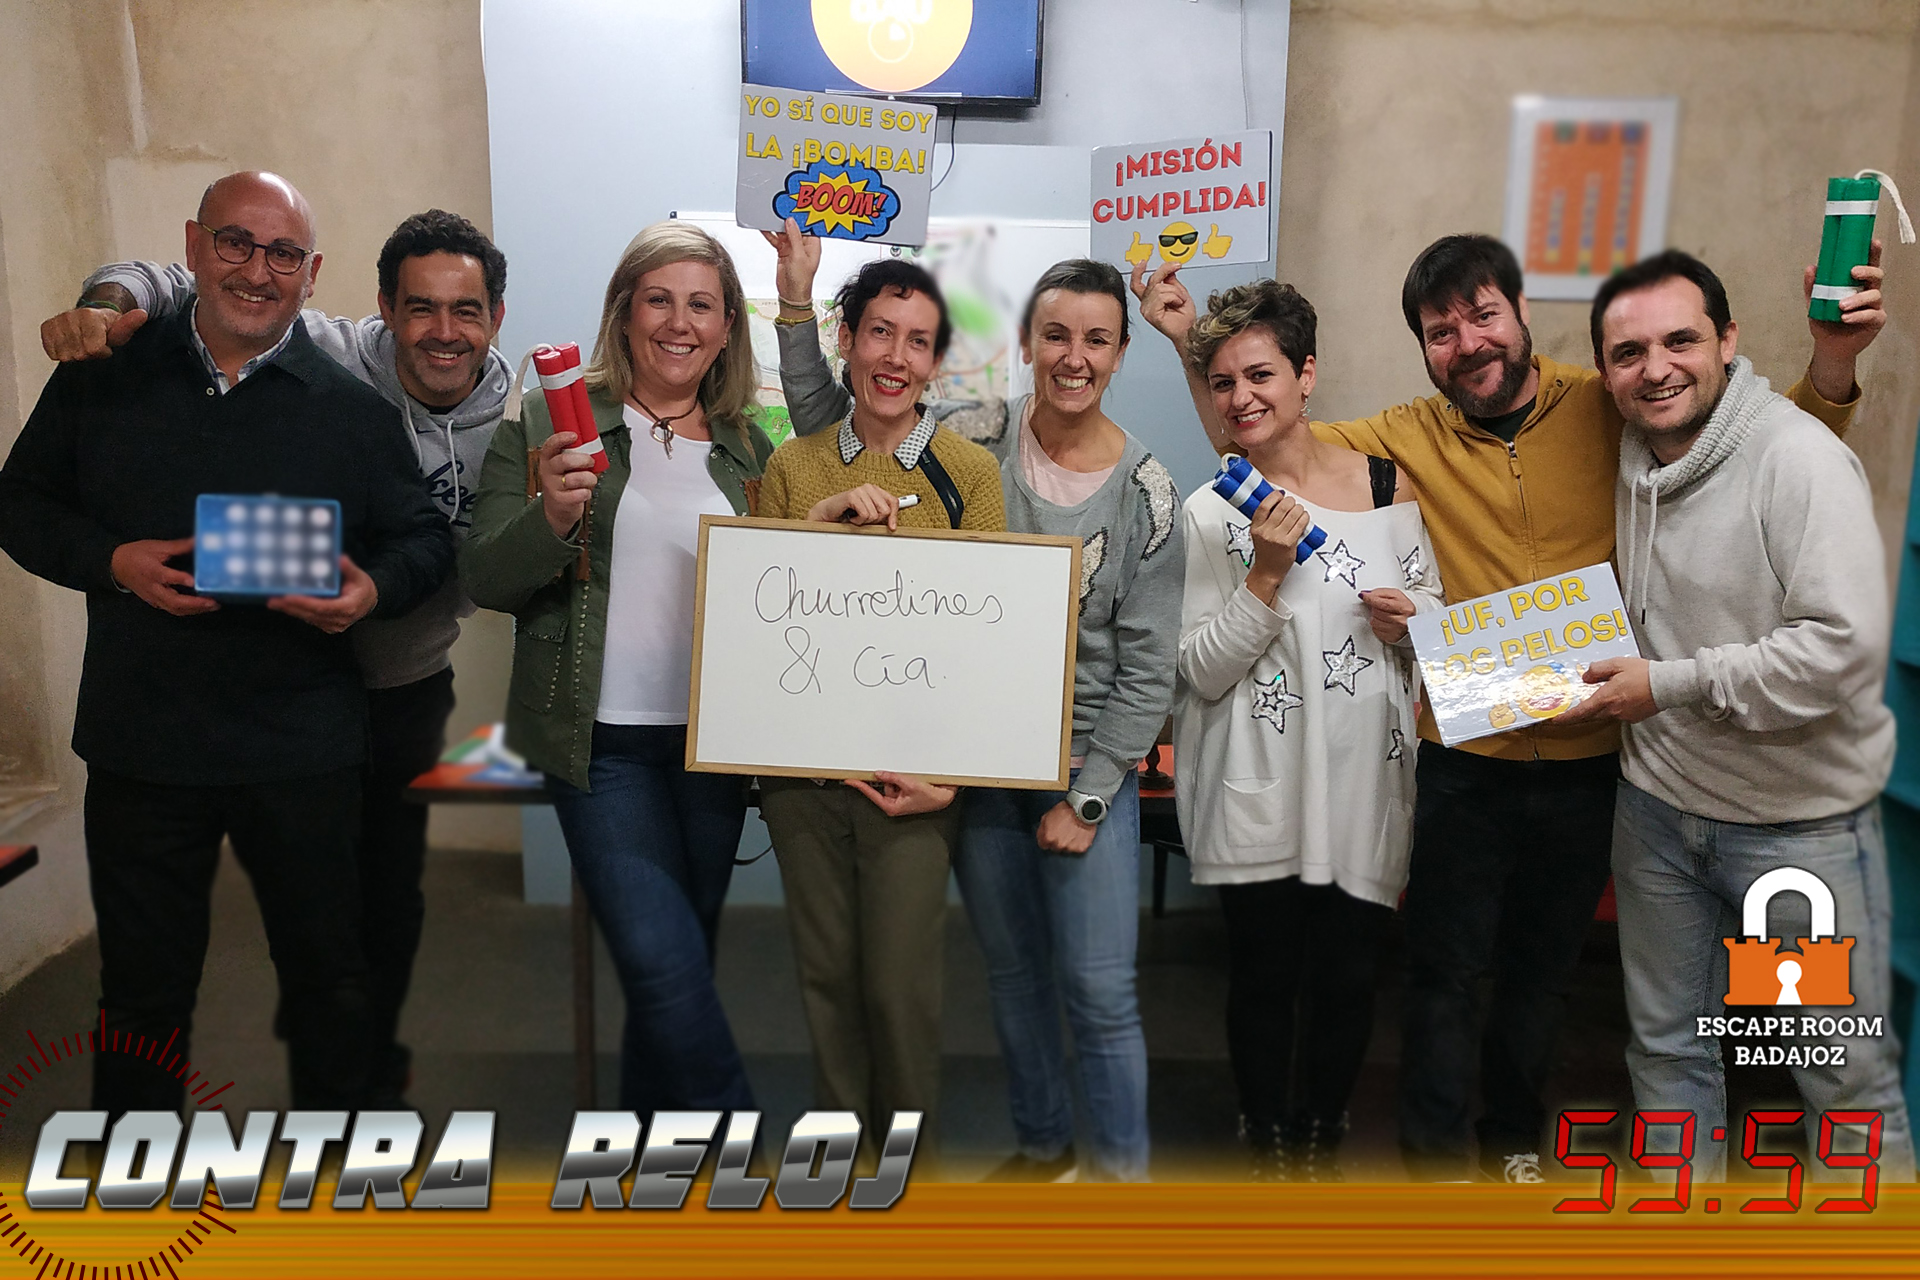 Equipo-churretines-escape-room-badajoz